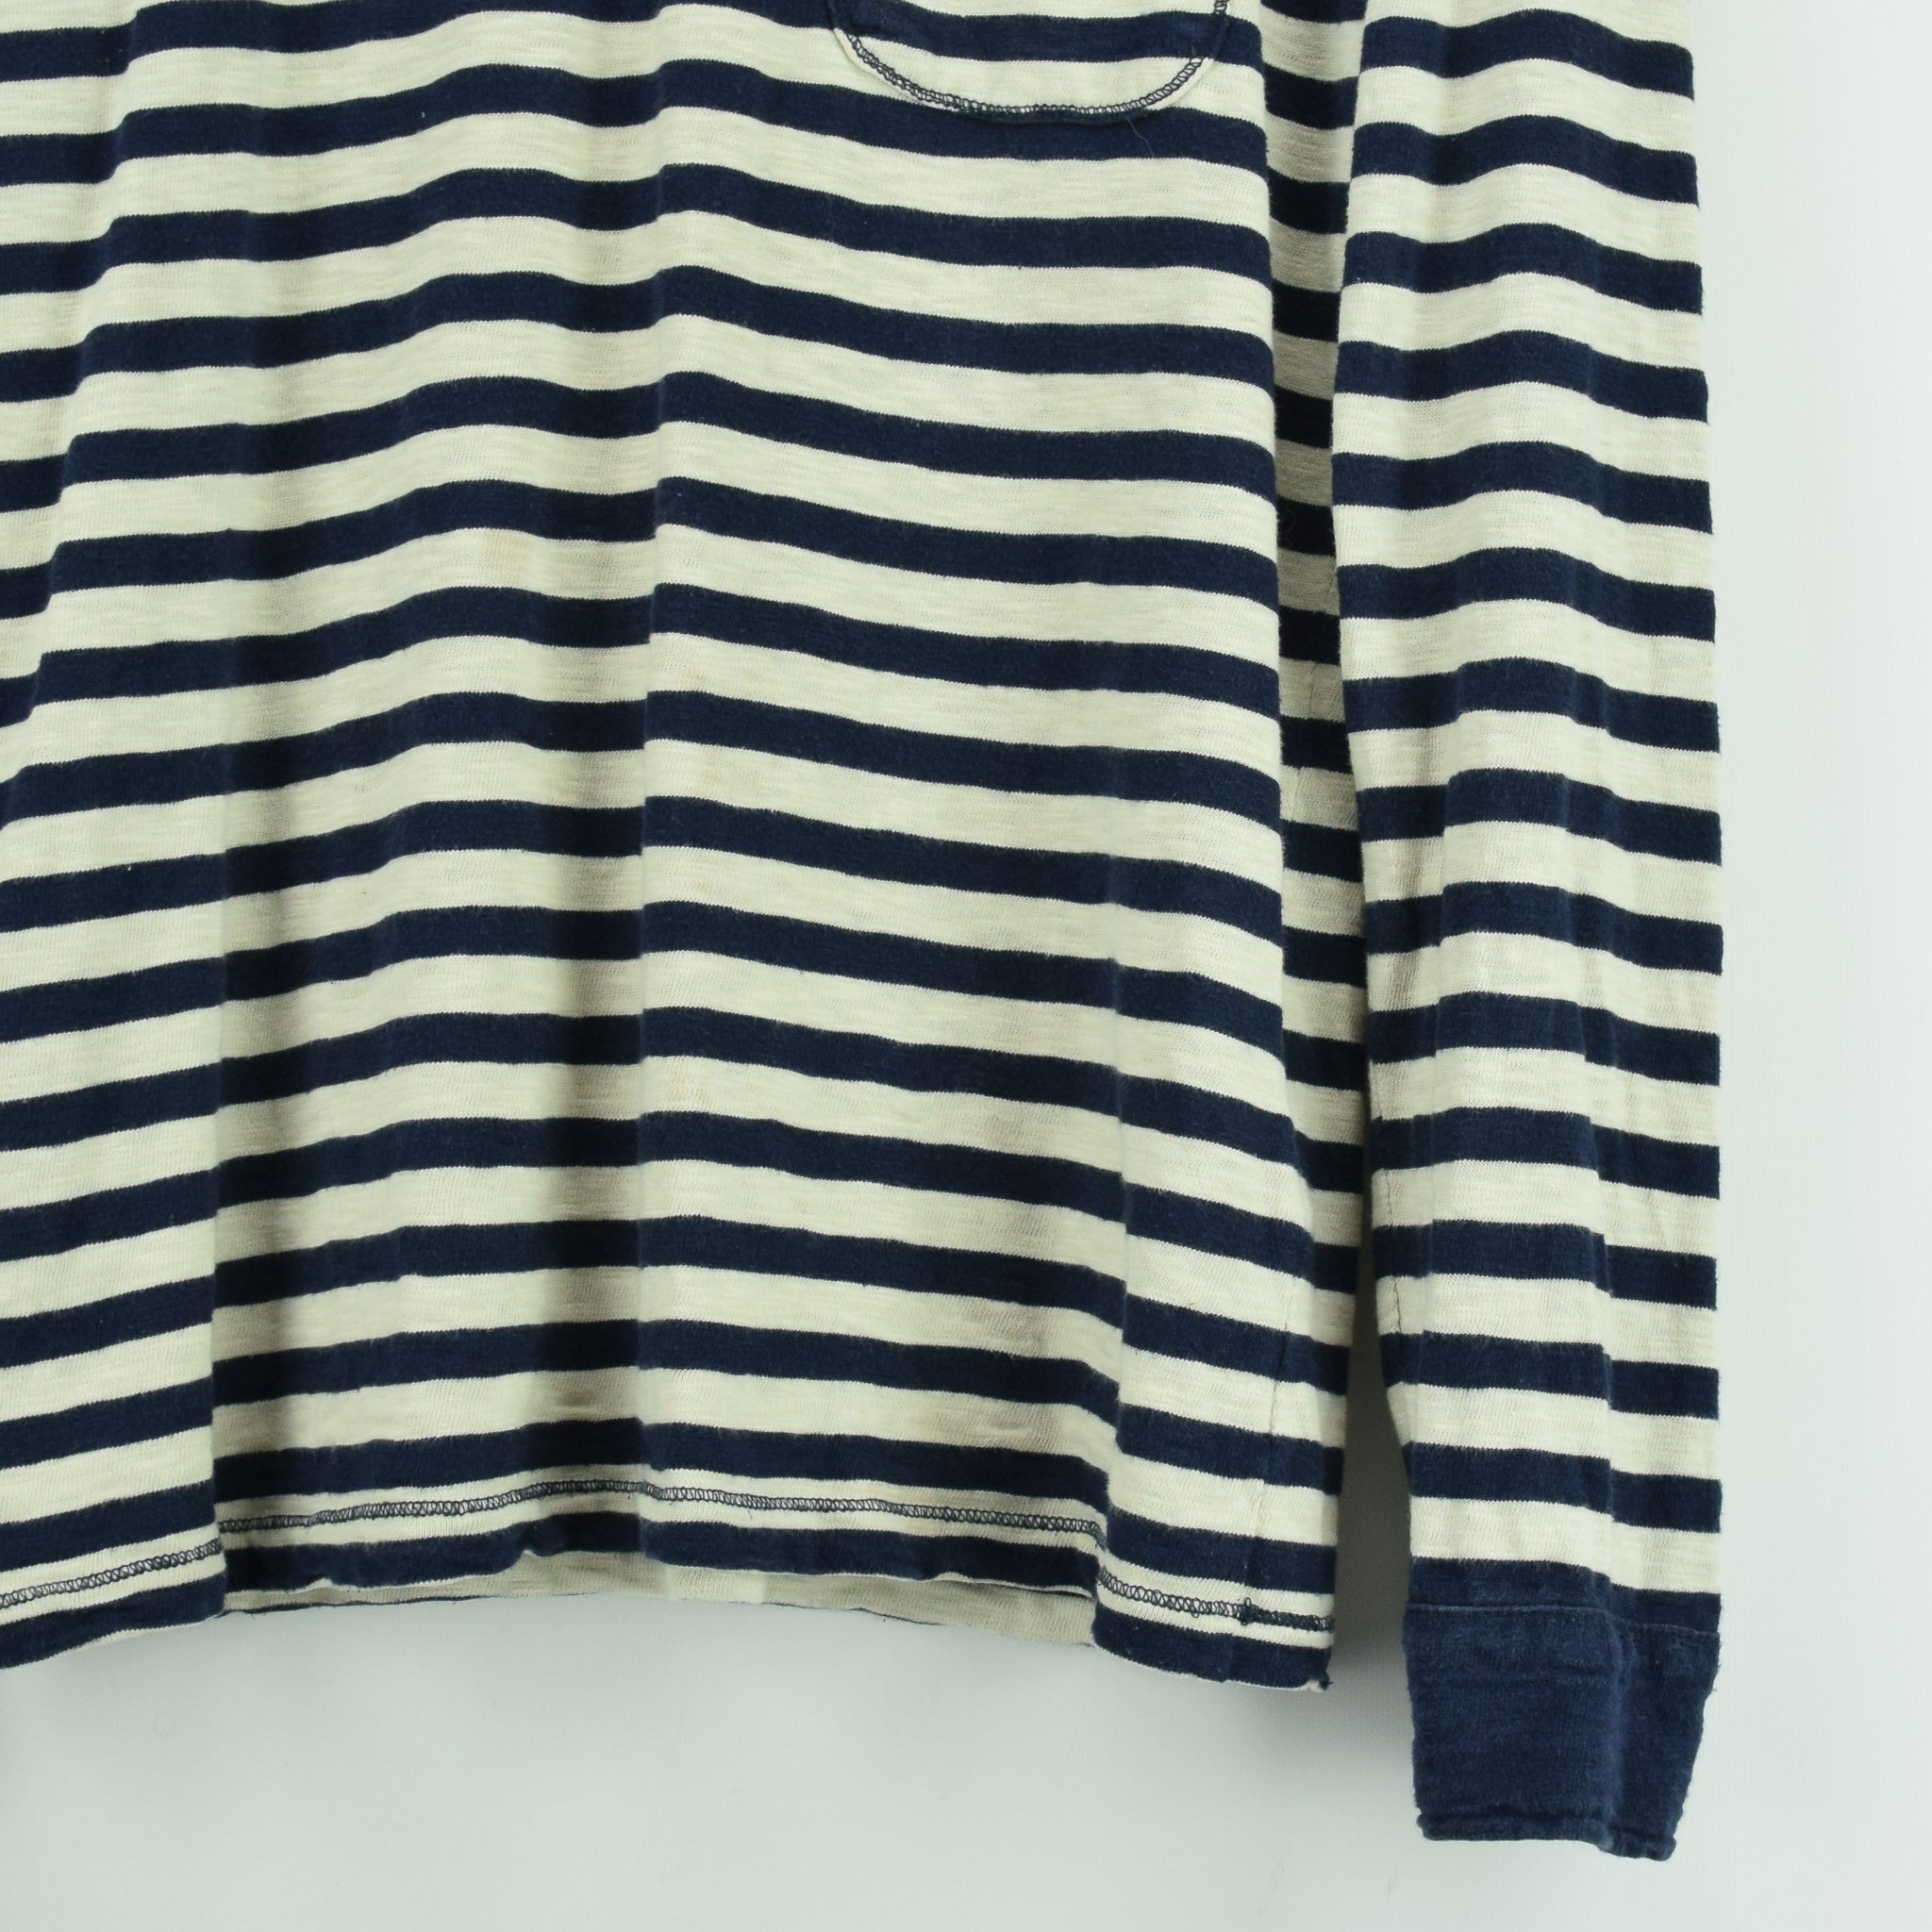 Vintage NN 07 Breton Striped Sailor's Long Sleeved Cotton T-shirt Top S / M front hem